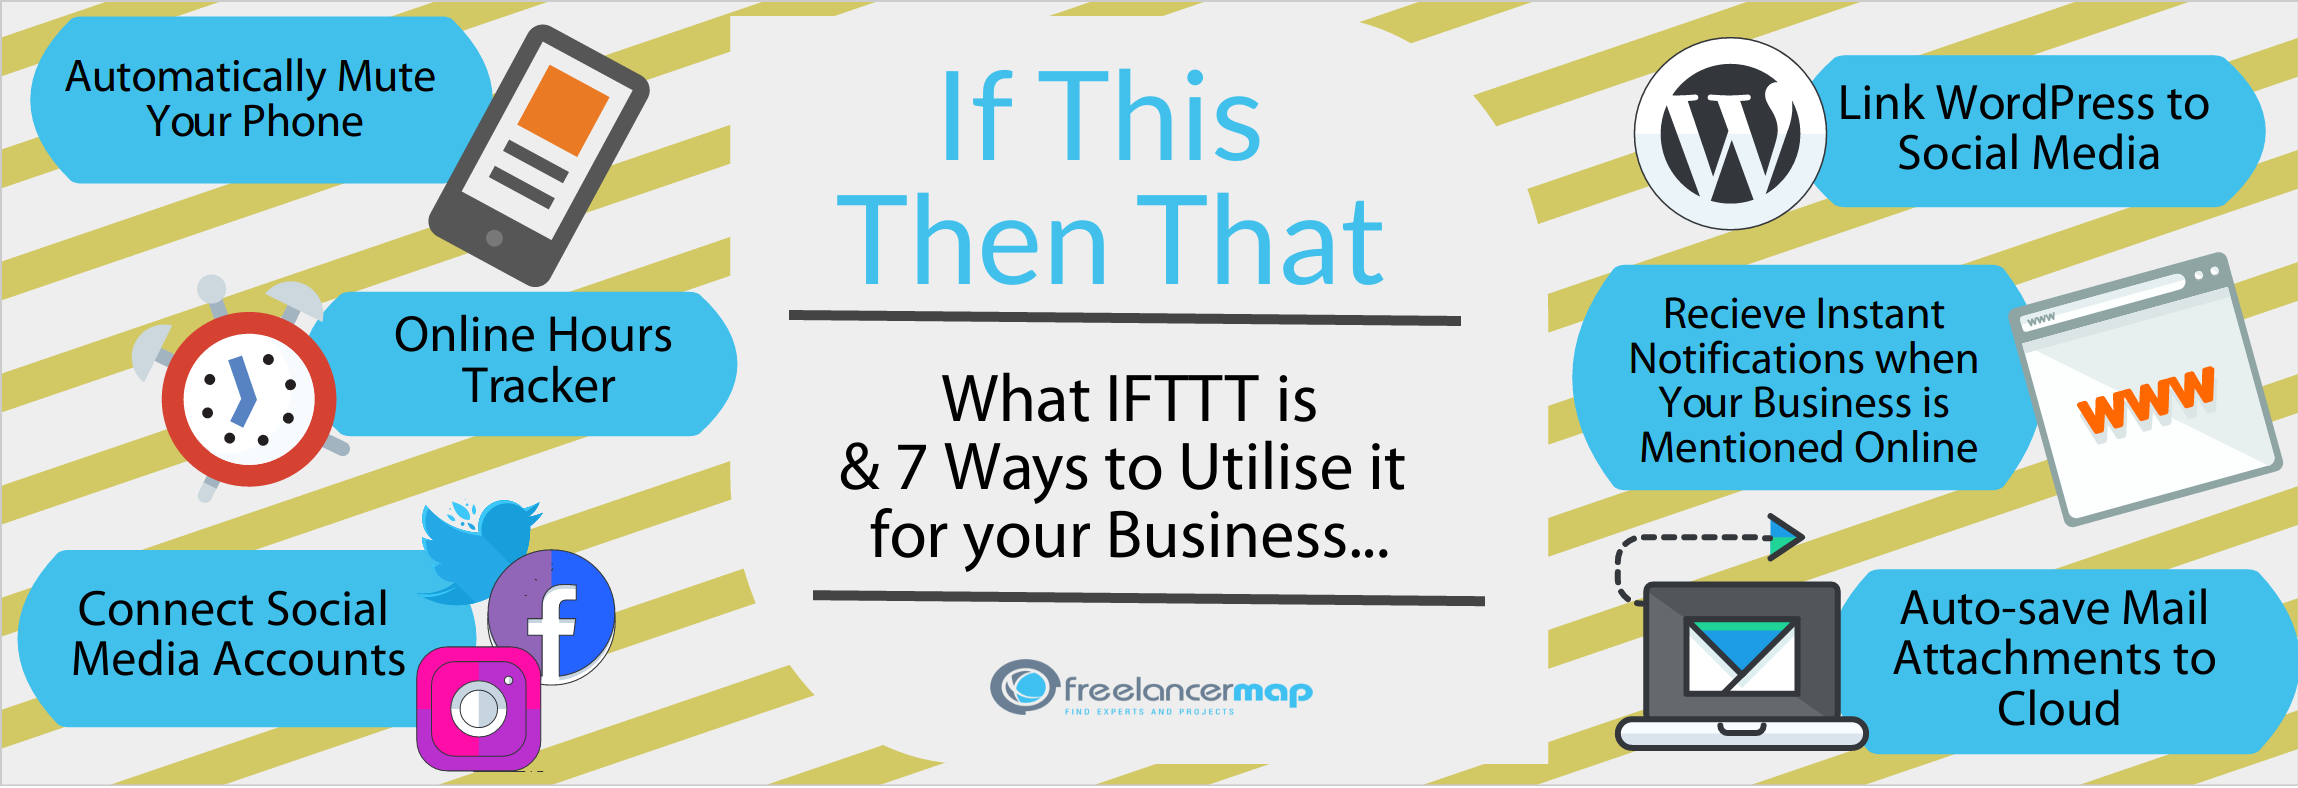 If This Then That: What is IFTTT & 7 ways to Utilise it for